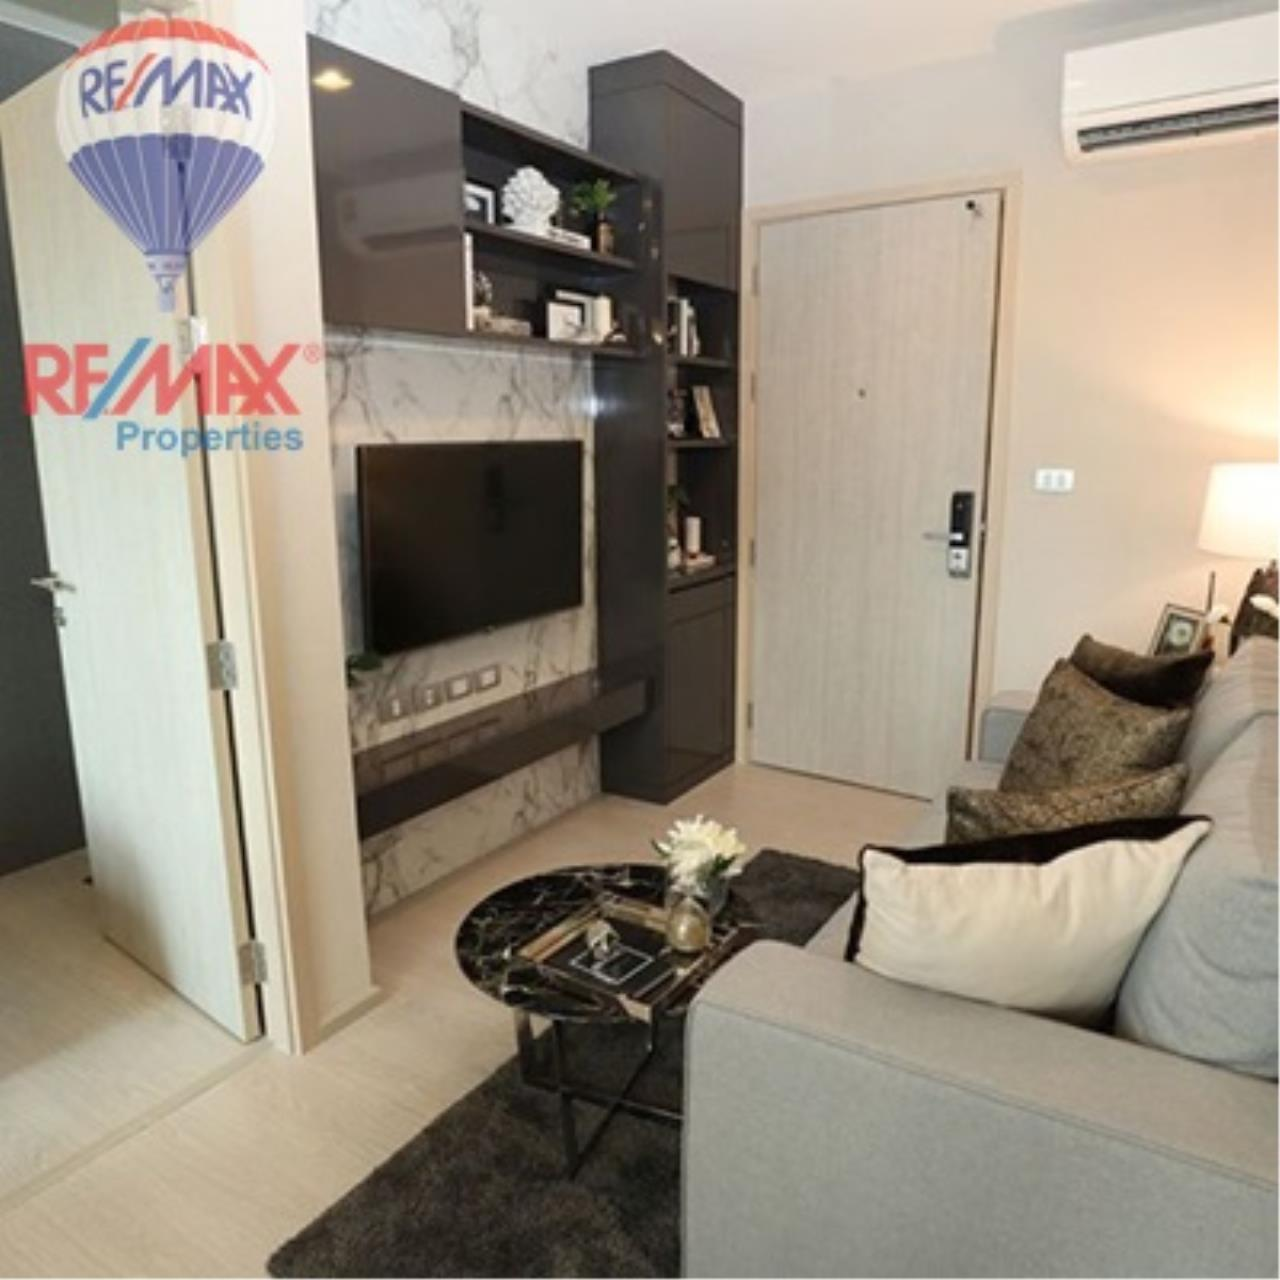 RE/MAX Properties Agency's FOR SALE - RHYTHM SUKHUMVIT 36-38 1 BED 33 SQM  5